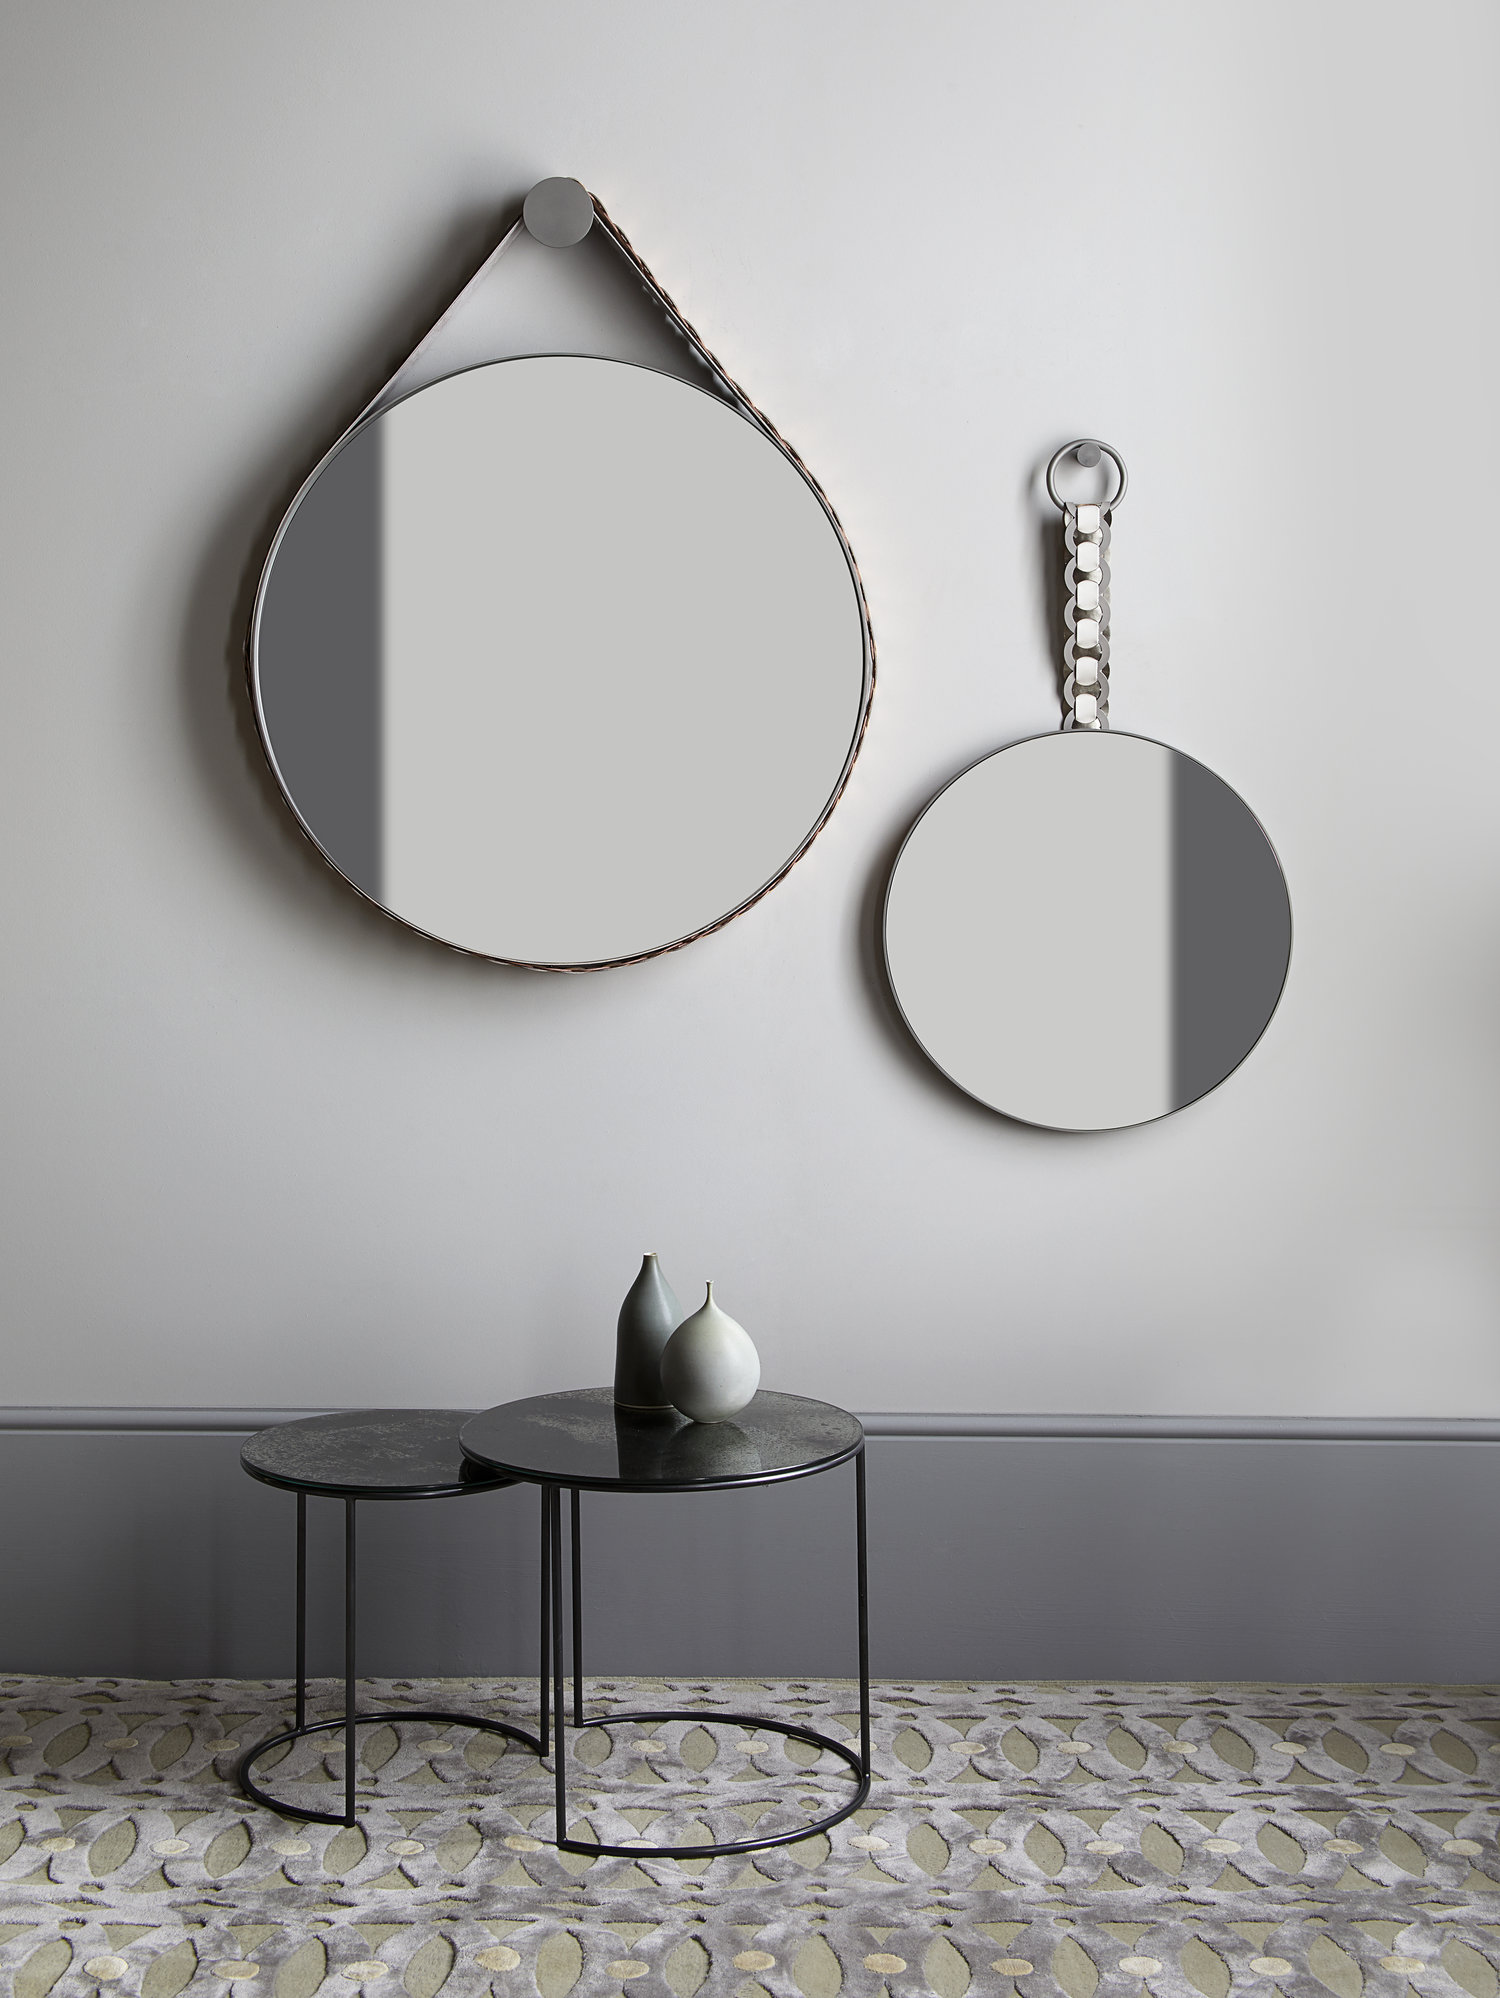 Braid strap pendant mirror